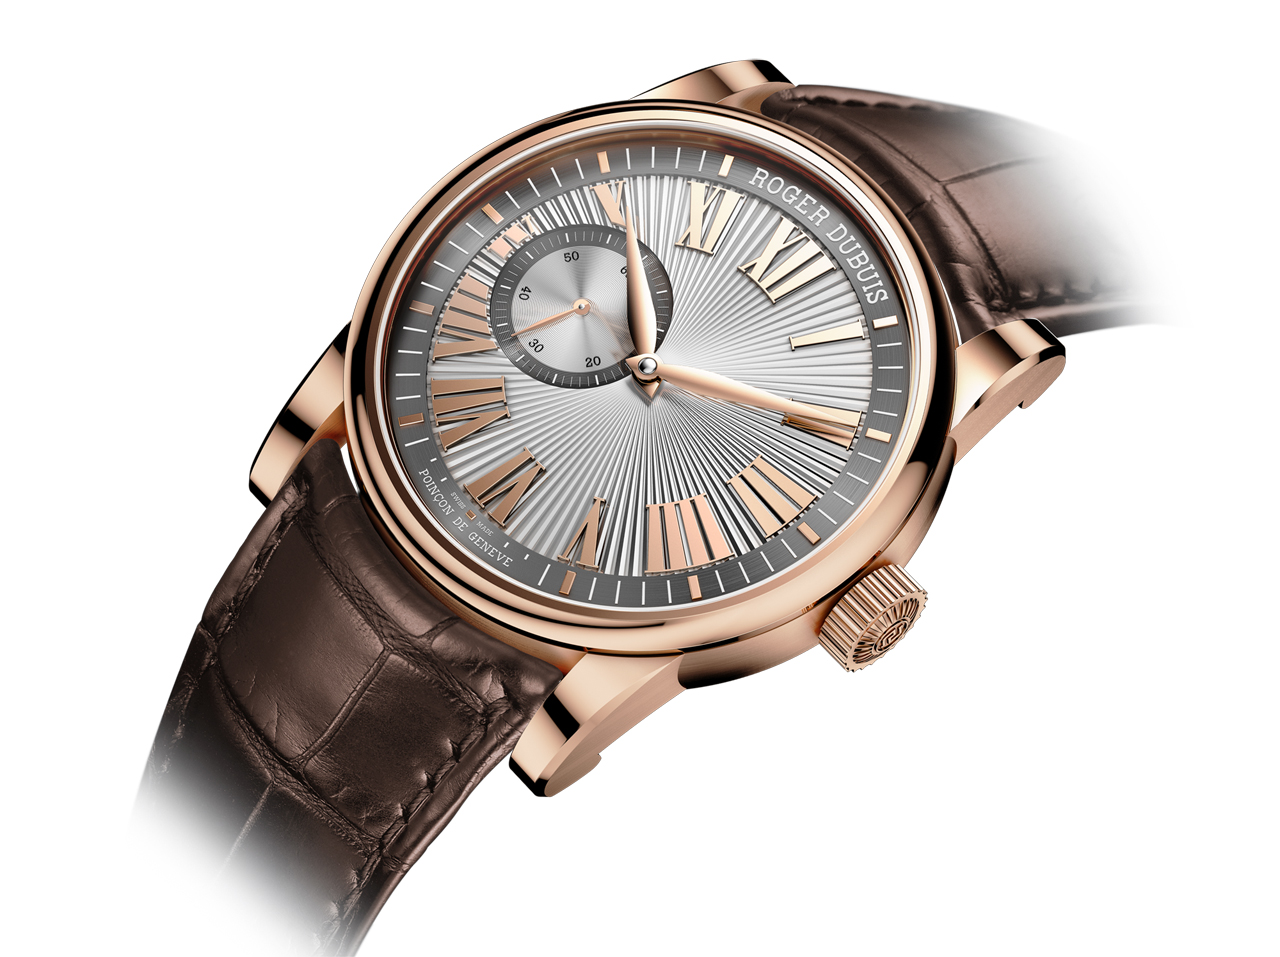 RDDBHO0565 Roger Dubuis Hommage Collection